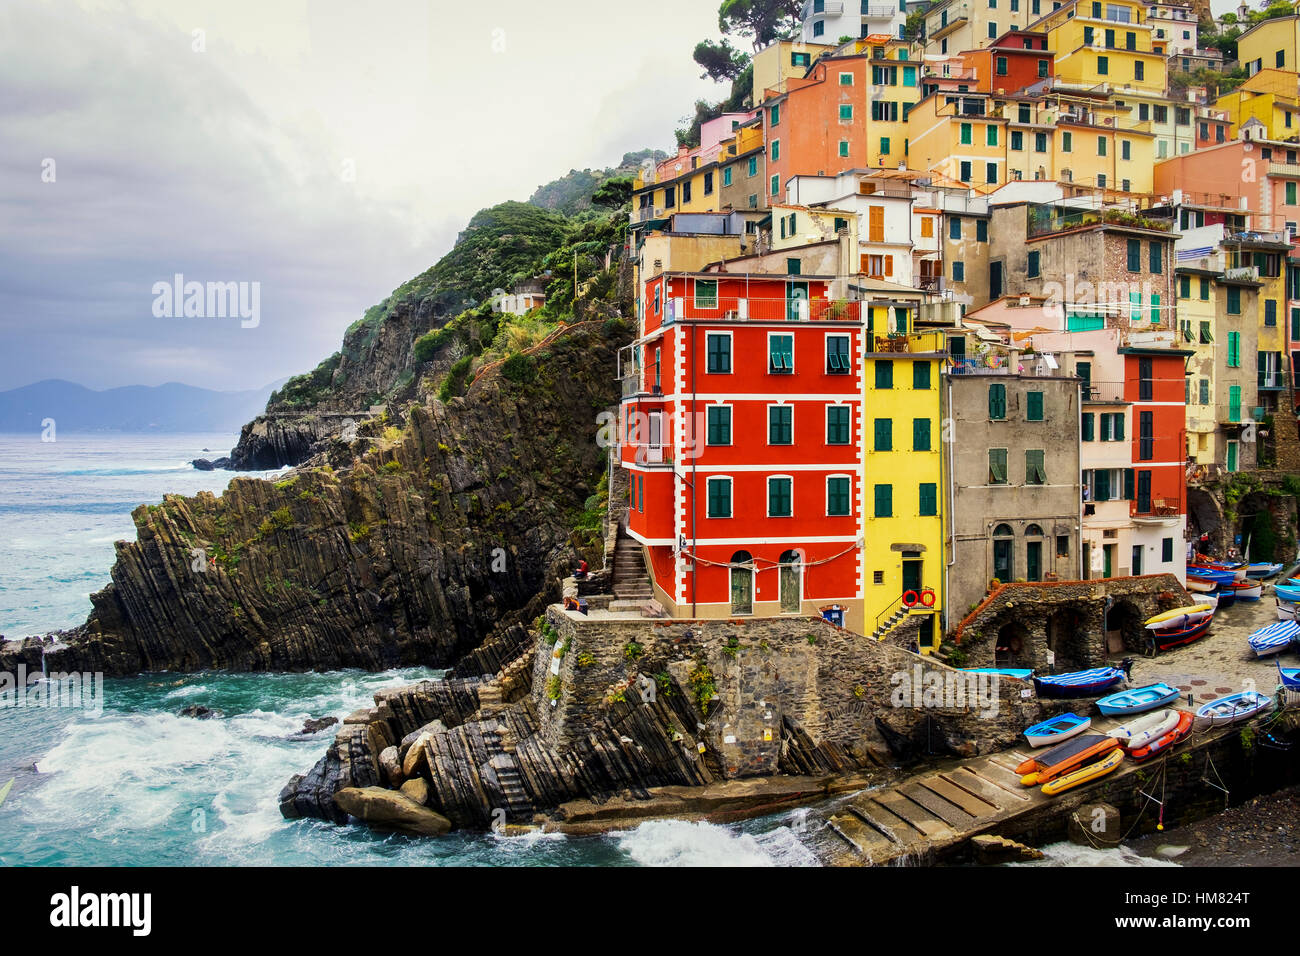 Riomaggiore is the largest of the five towns of Cinque Terre - Stock Image